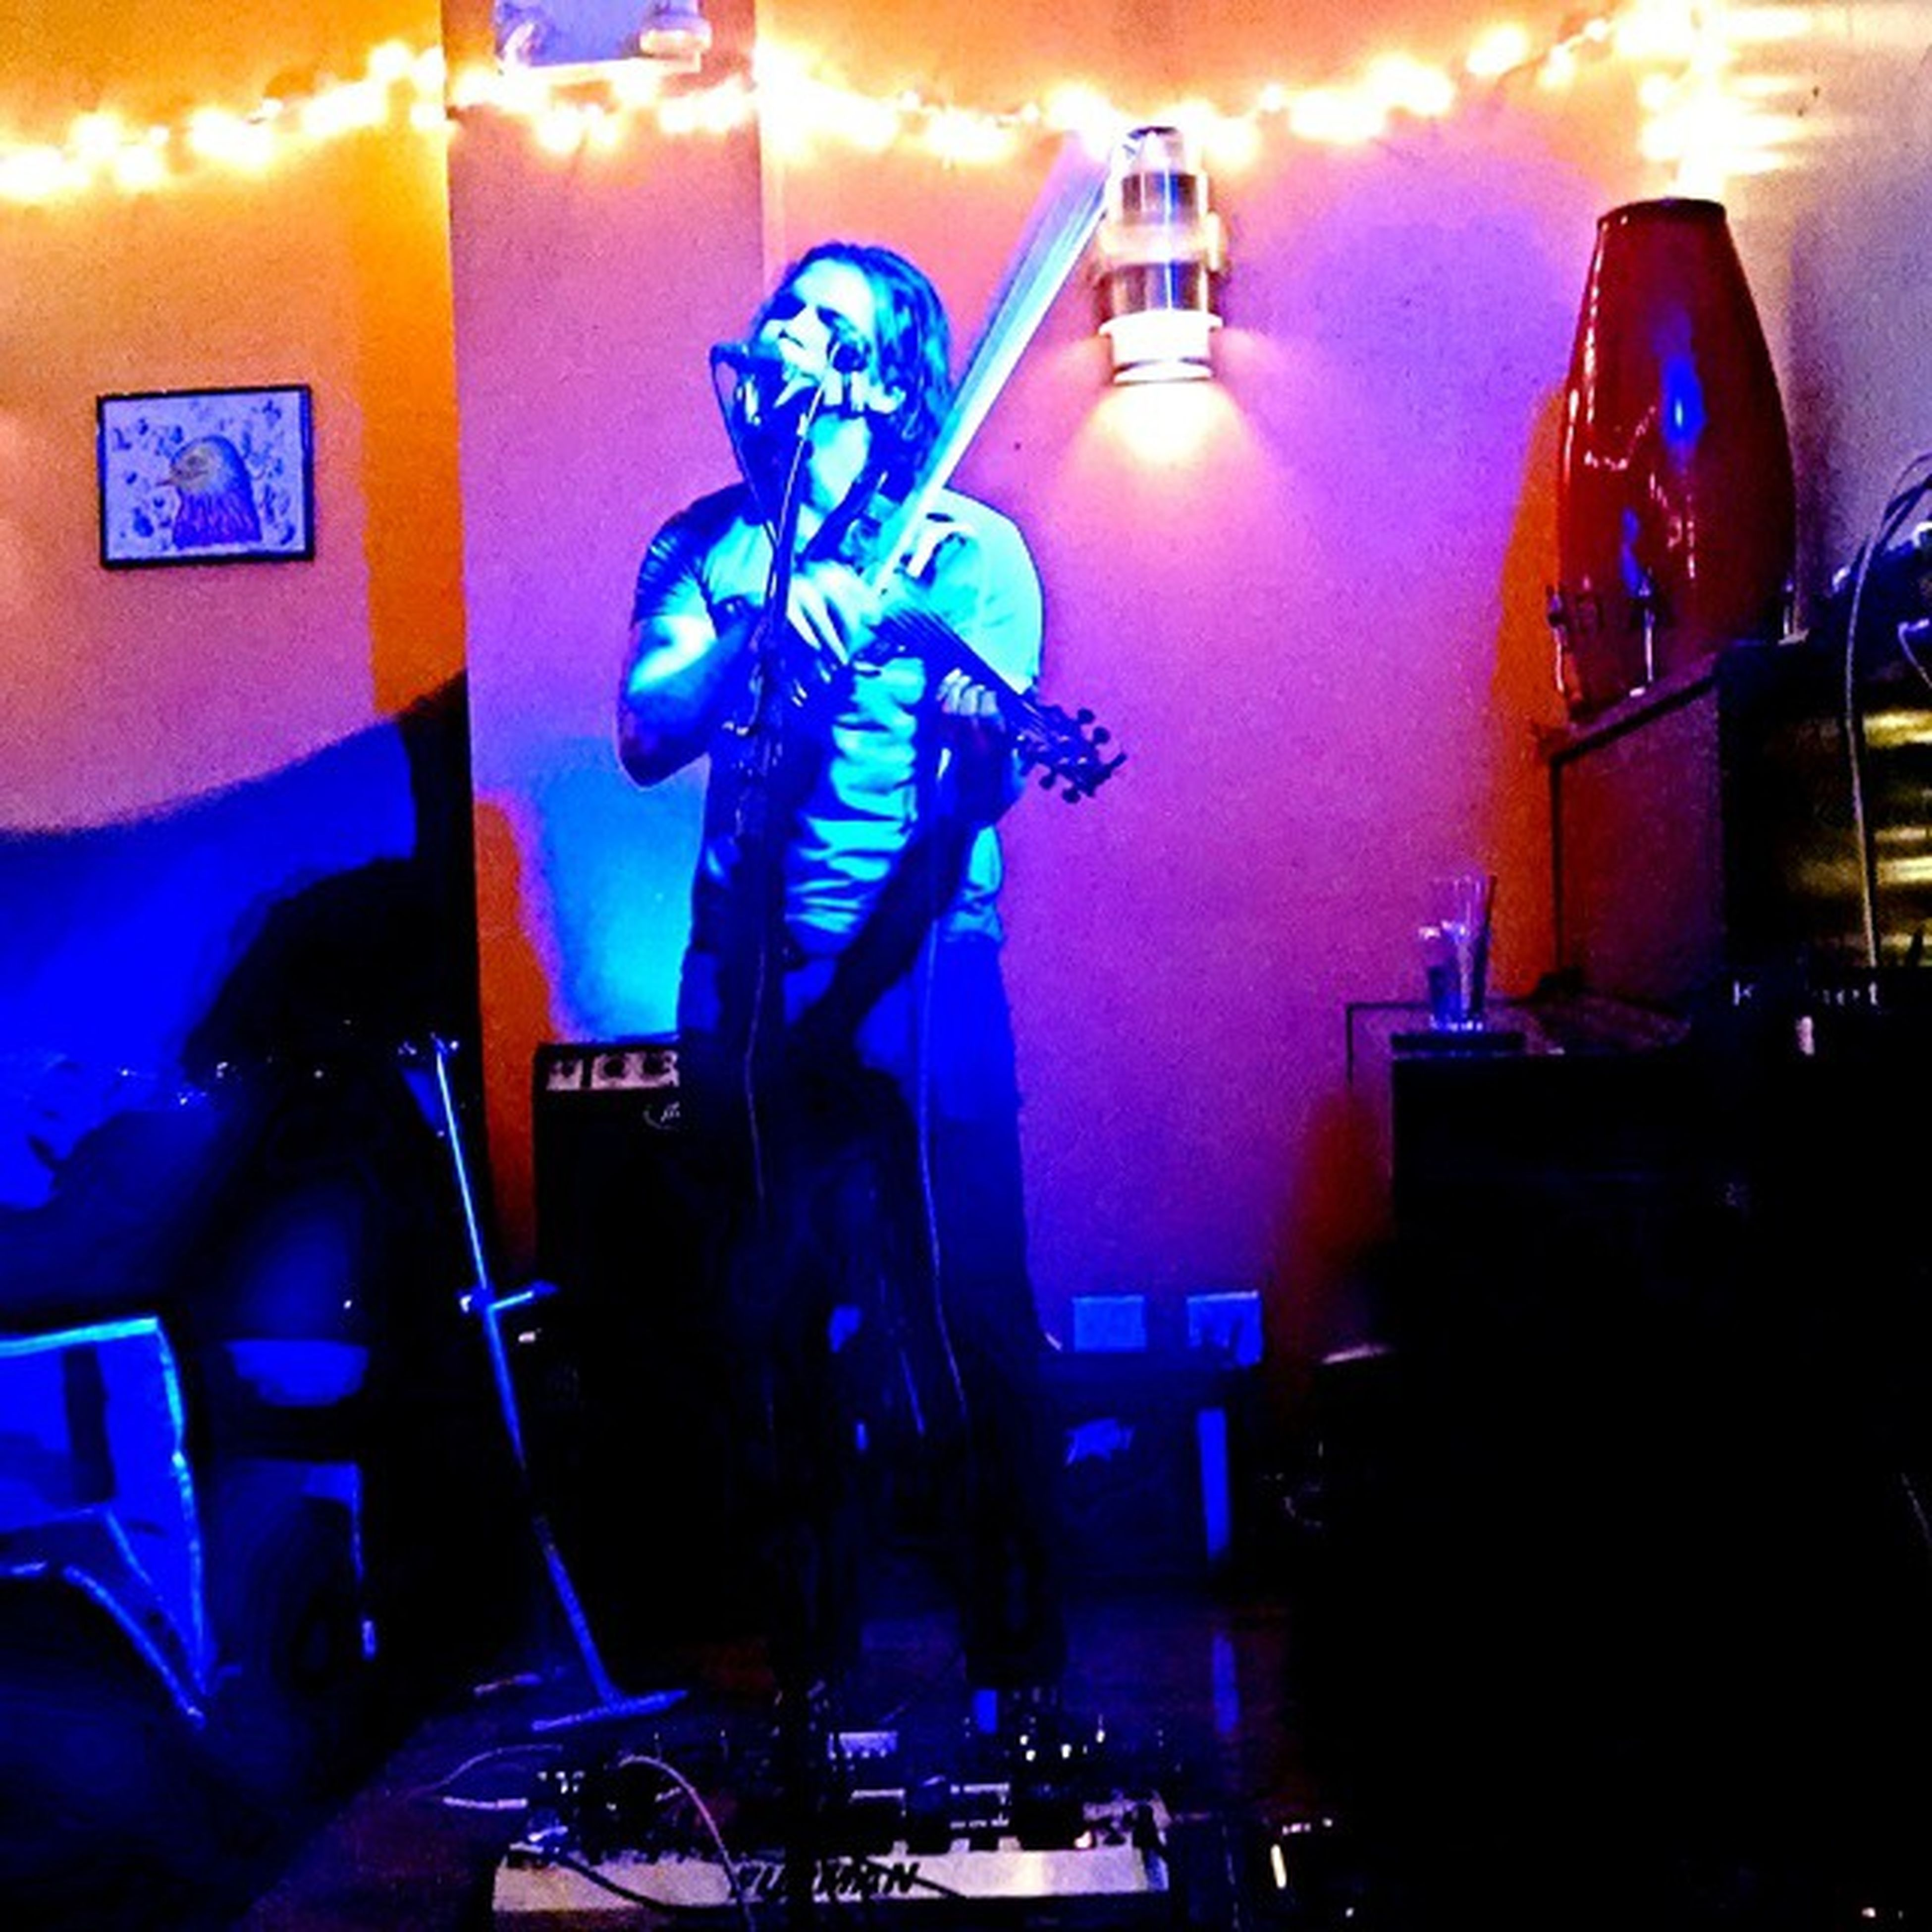 And the miles slip away.... Listening to @milesjacobmusic lay it down like a boss tonight. ColdNight Hotstage Pathcafe Electricviolin milesjacob musicvenue gig nyc